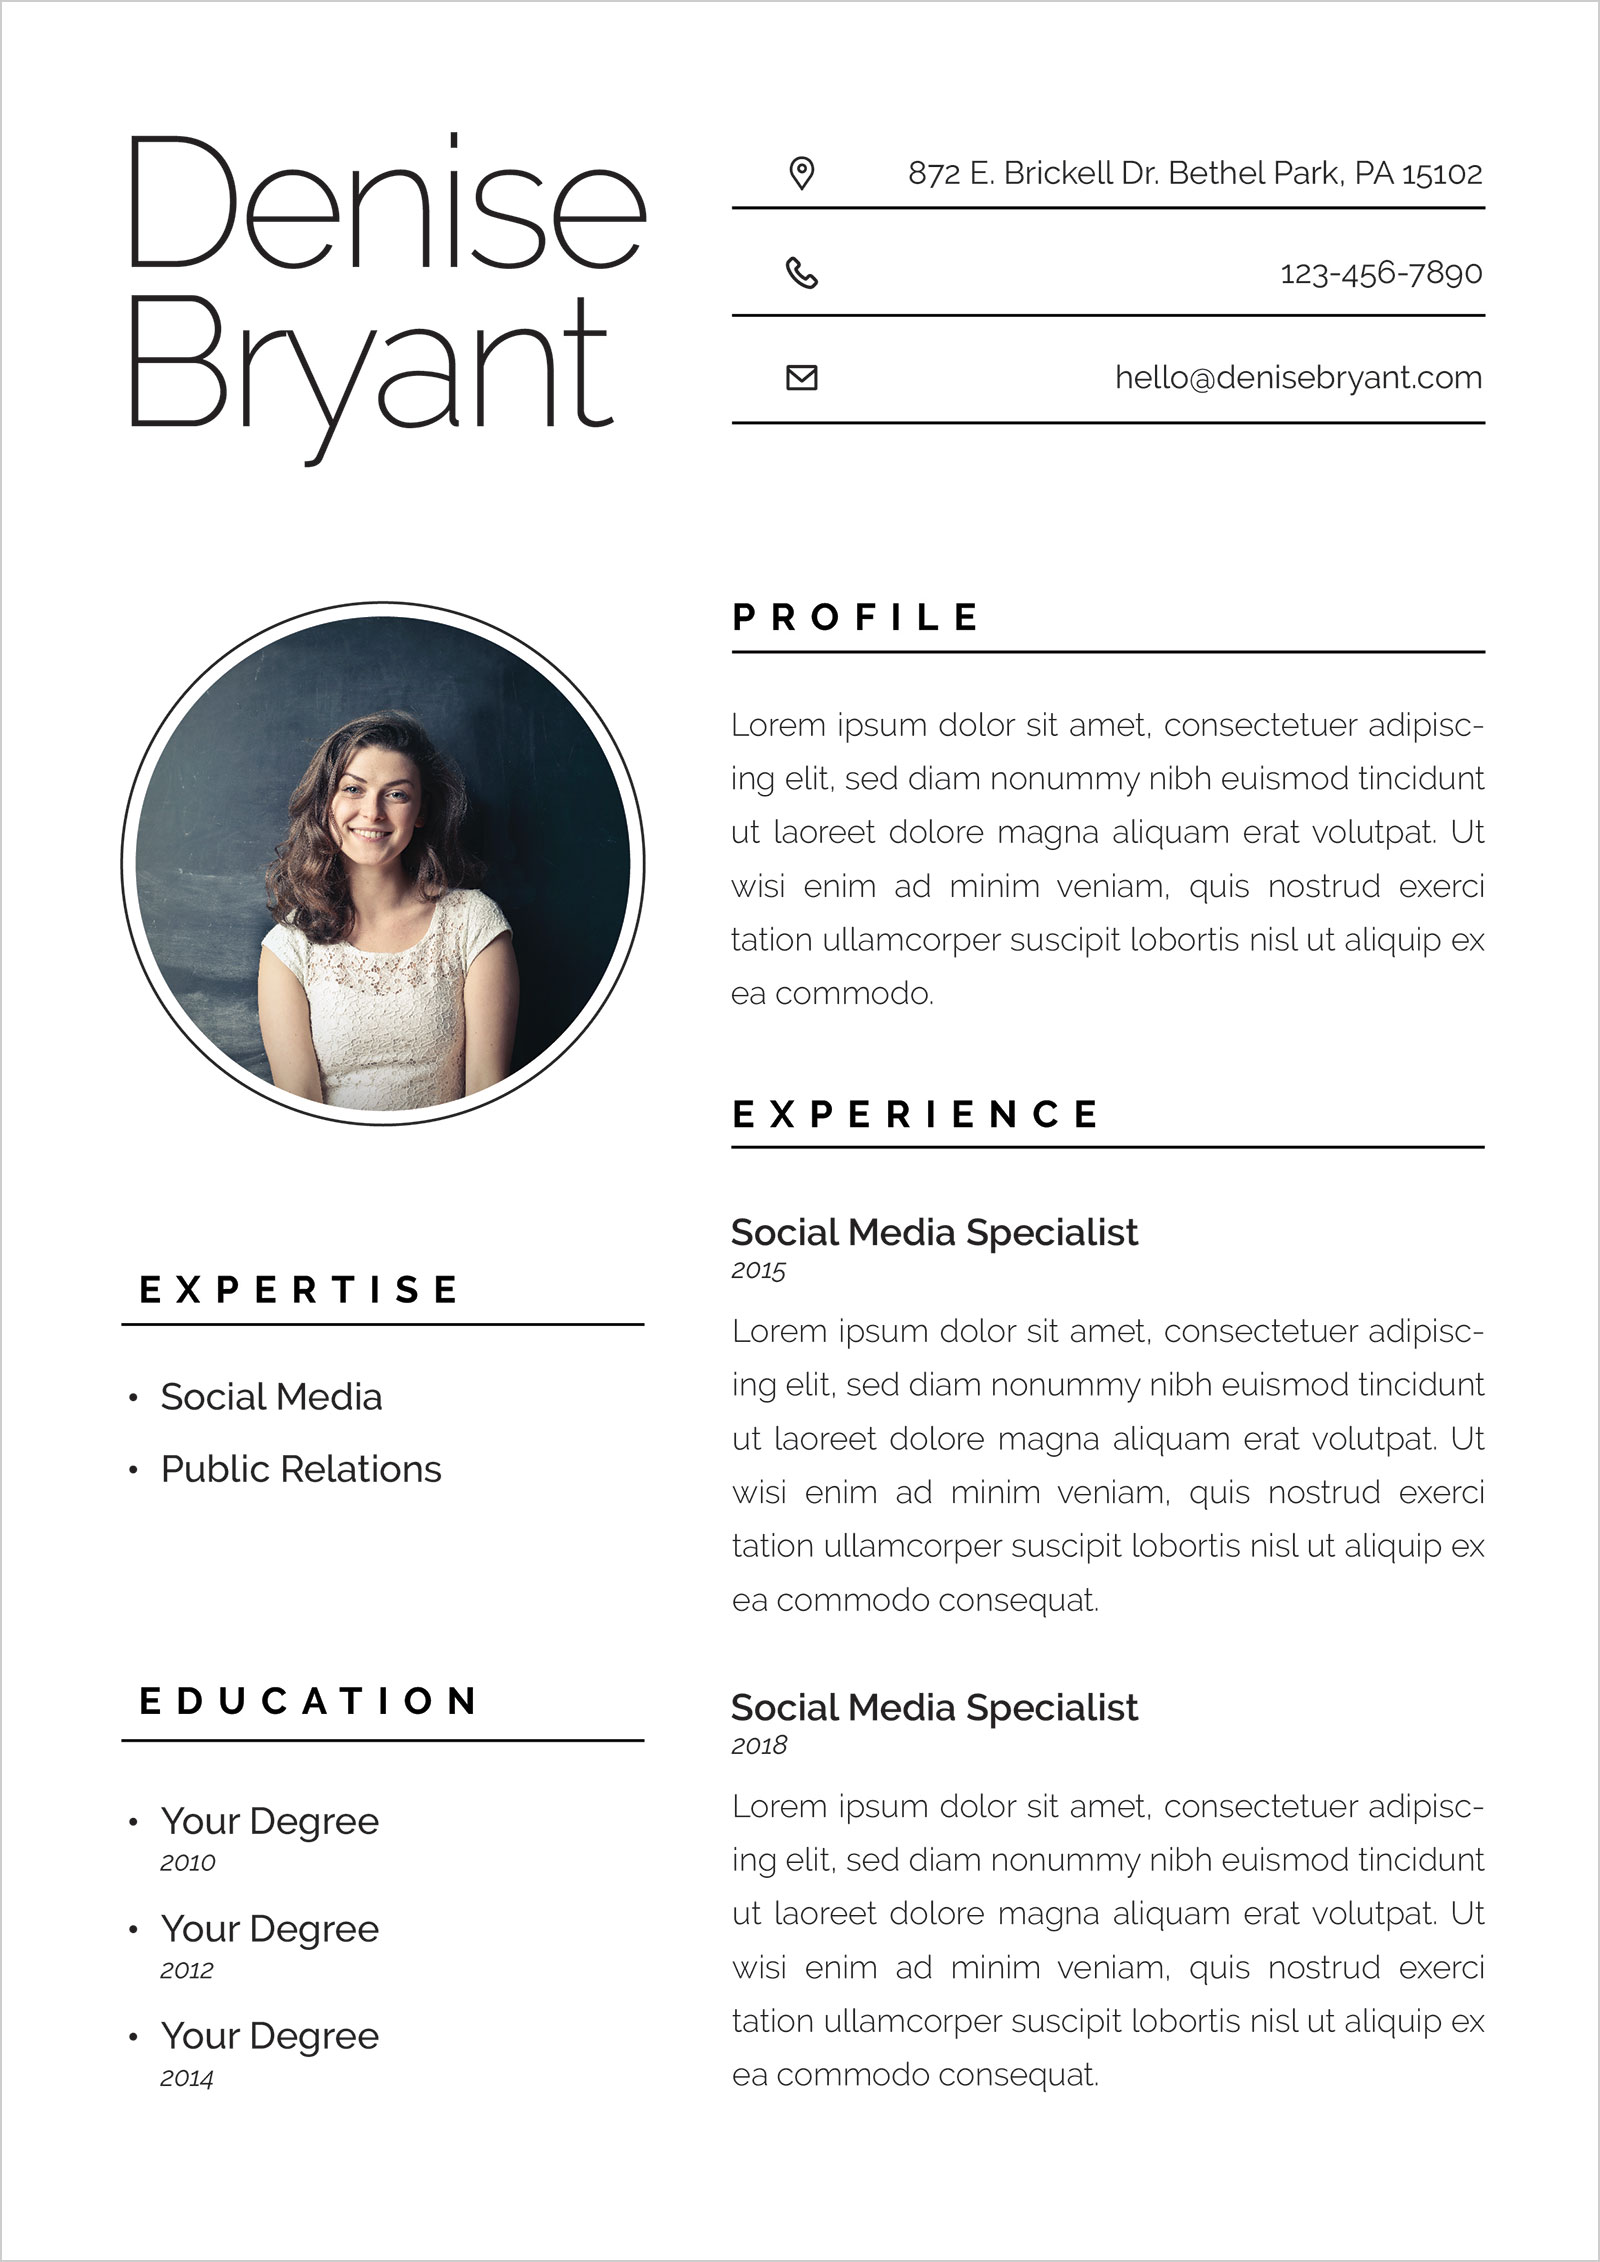 free resume cv format for social media specialists public relation officers good template Resume Social Media Resume Template